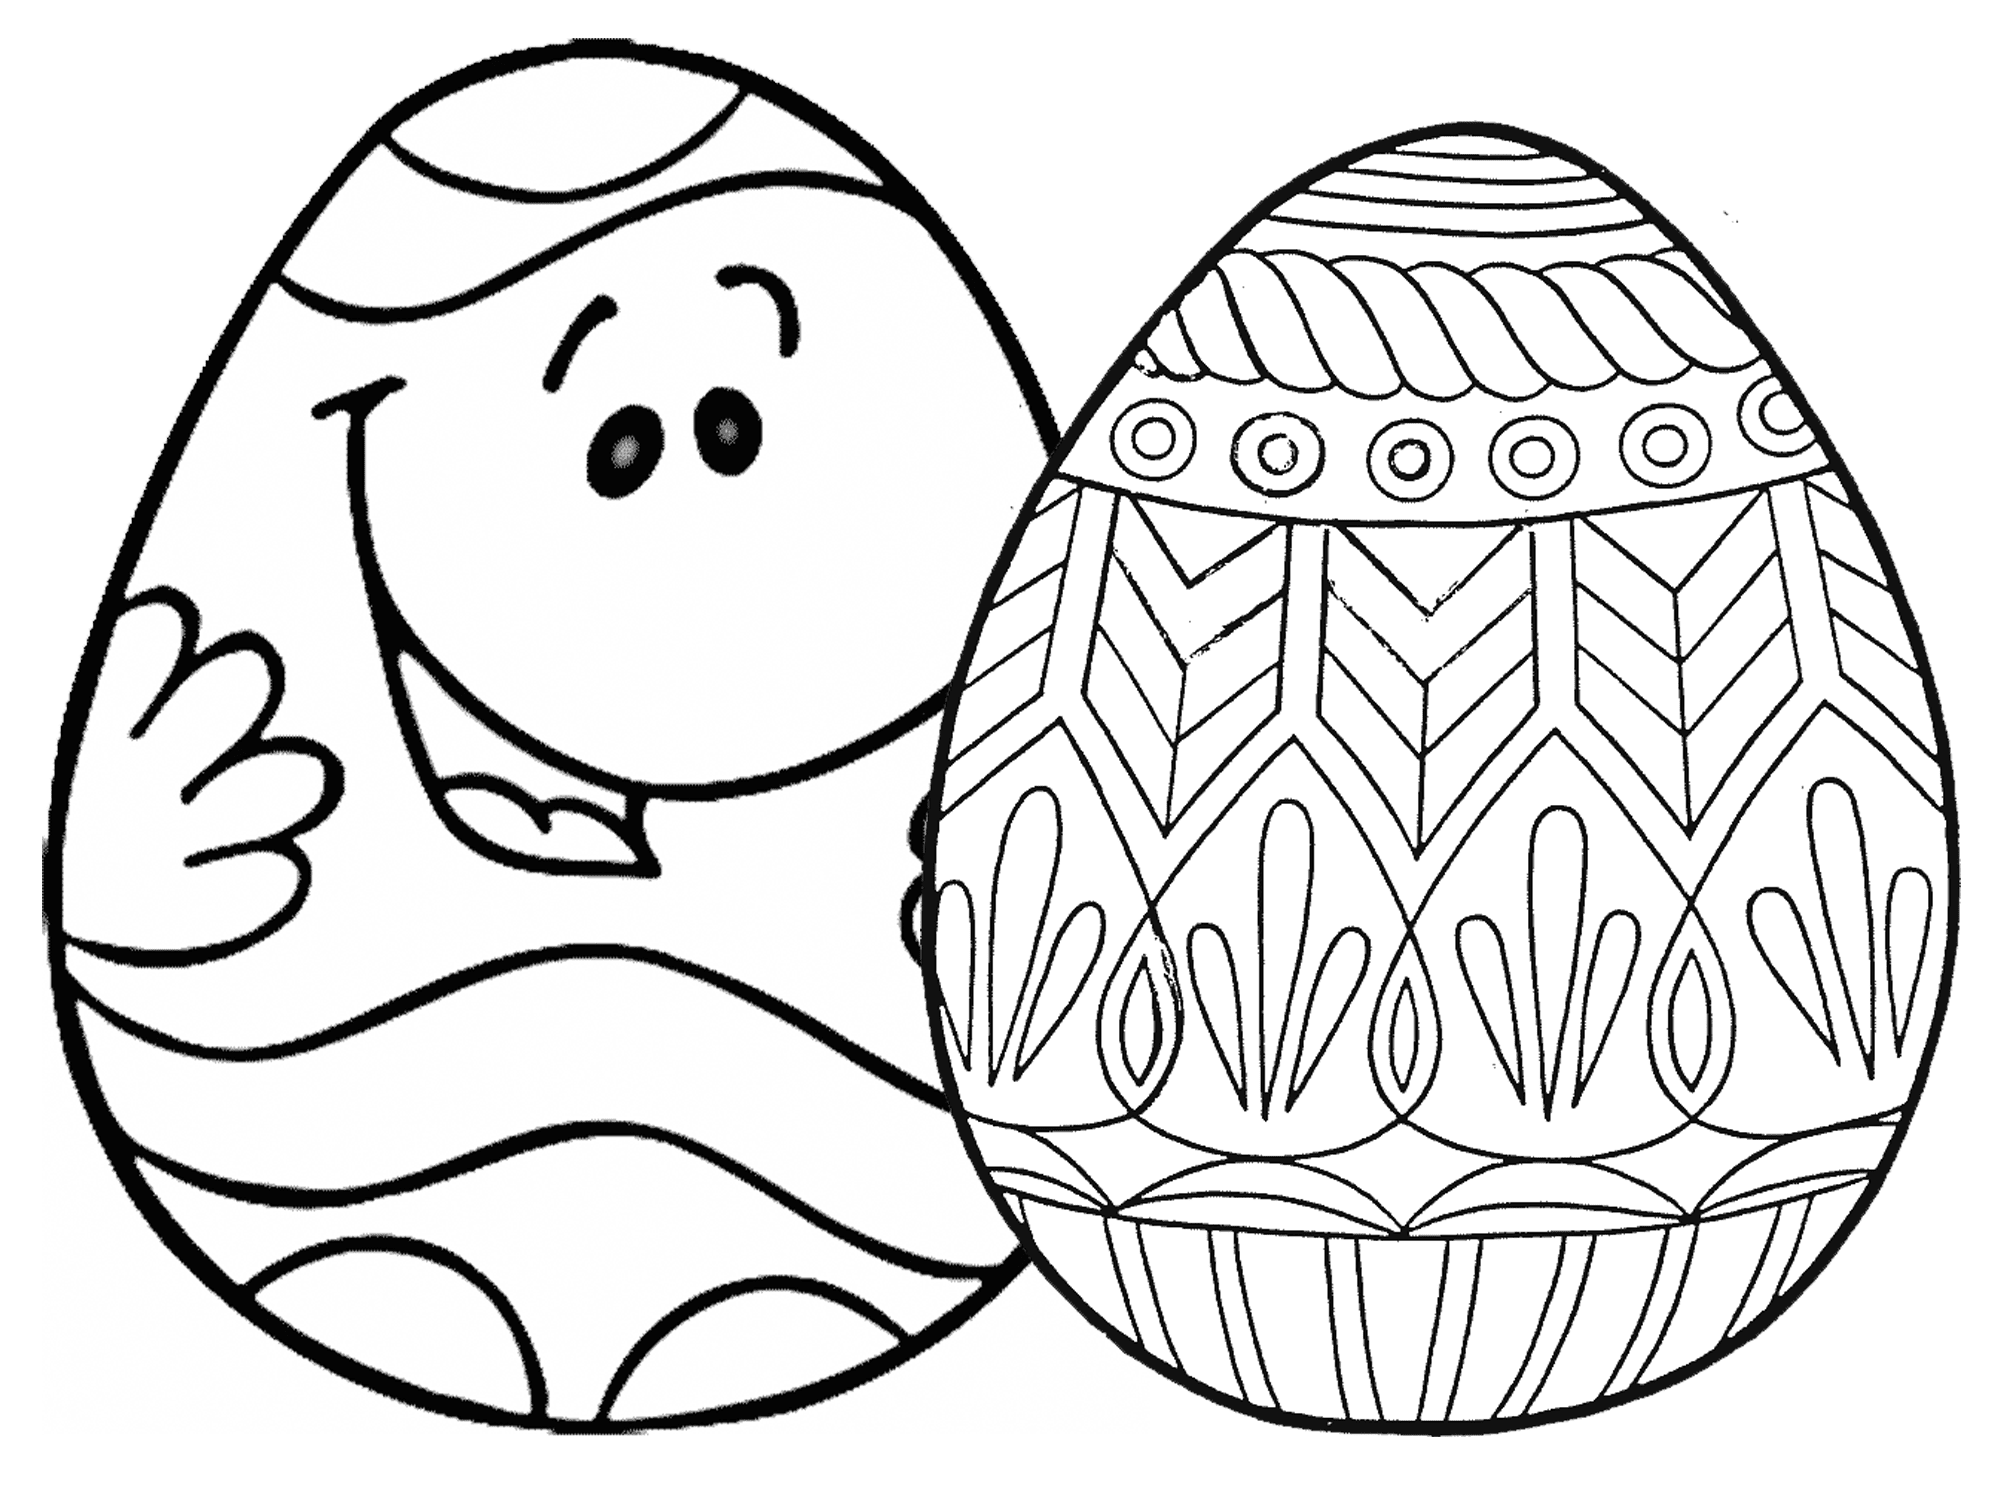 Easter Egg Coloring Pages At Coloringws